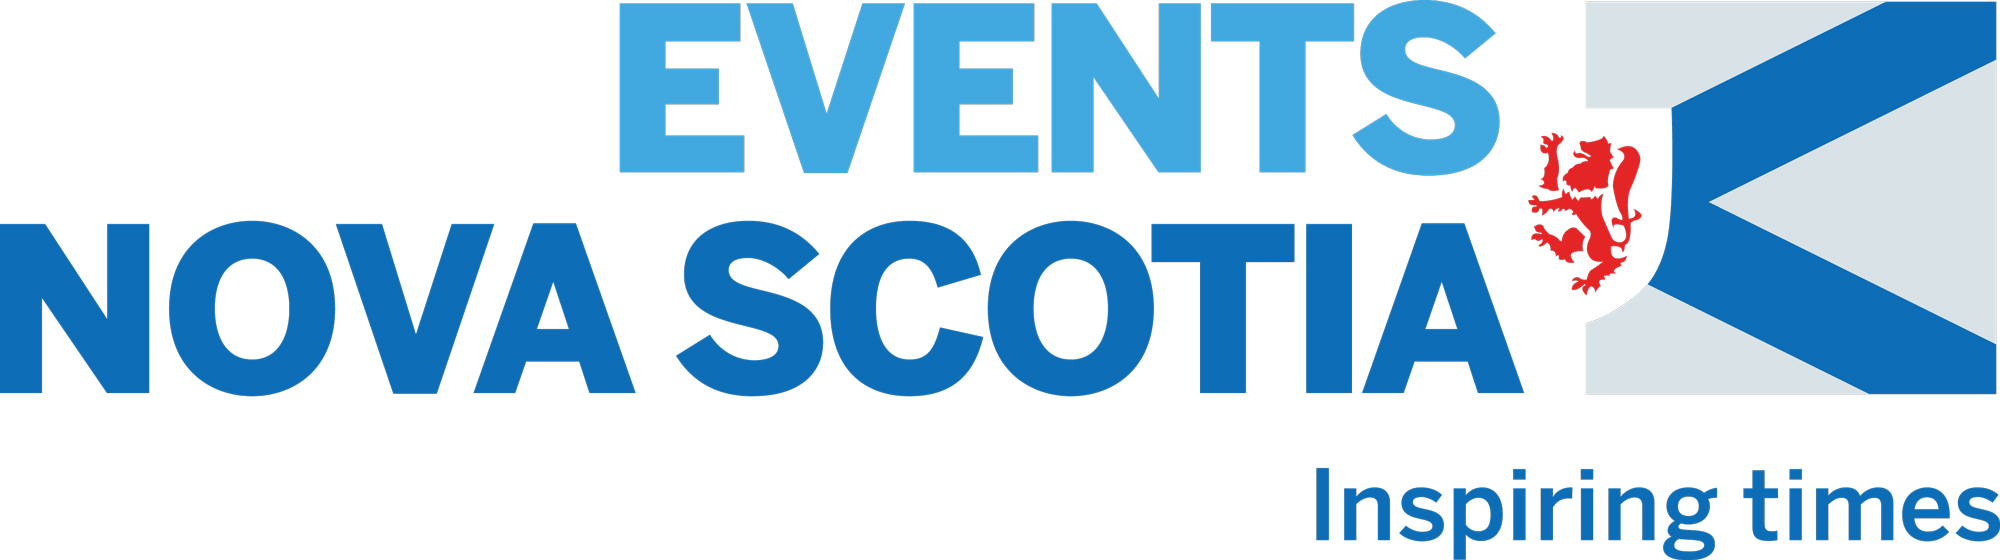 Events Nova Scotia - Inspiring times